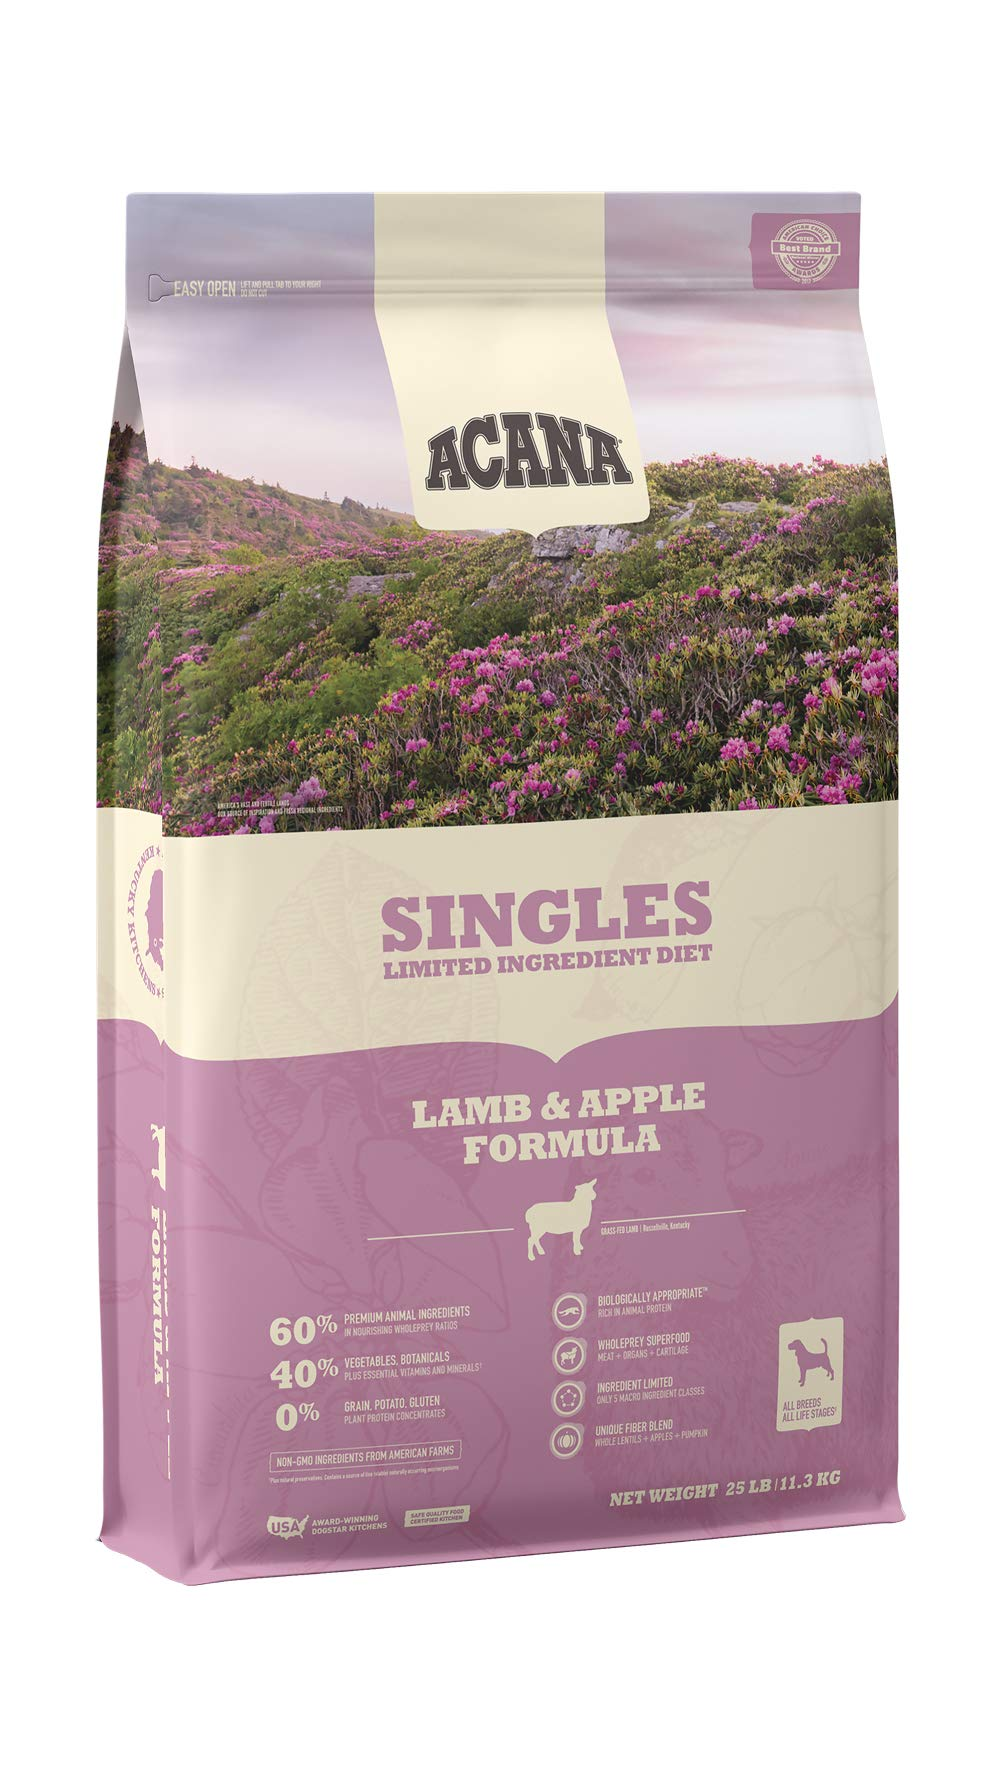 ACANA Singles Limited Ingredient Dry Dog Food, Lamb & Apple, Biologically Appropriate & Grain Free by ACANA